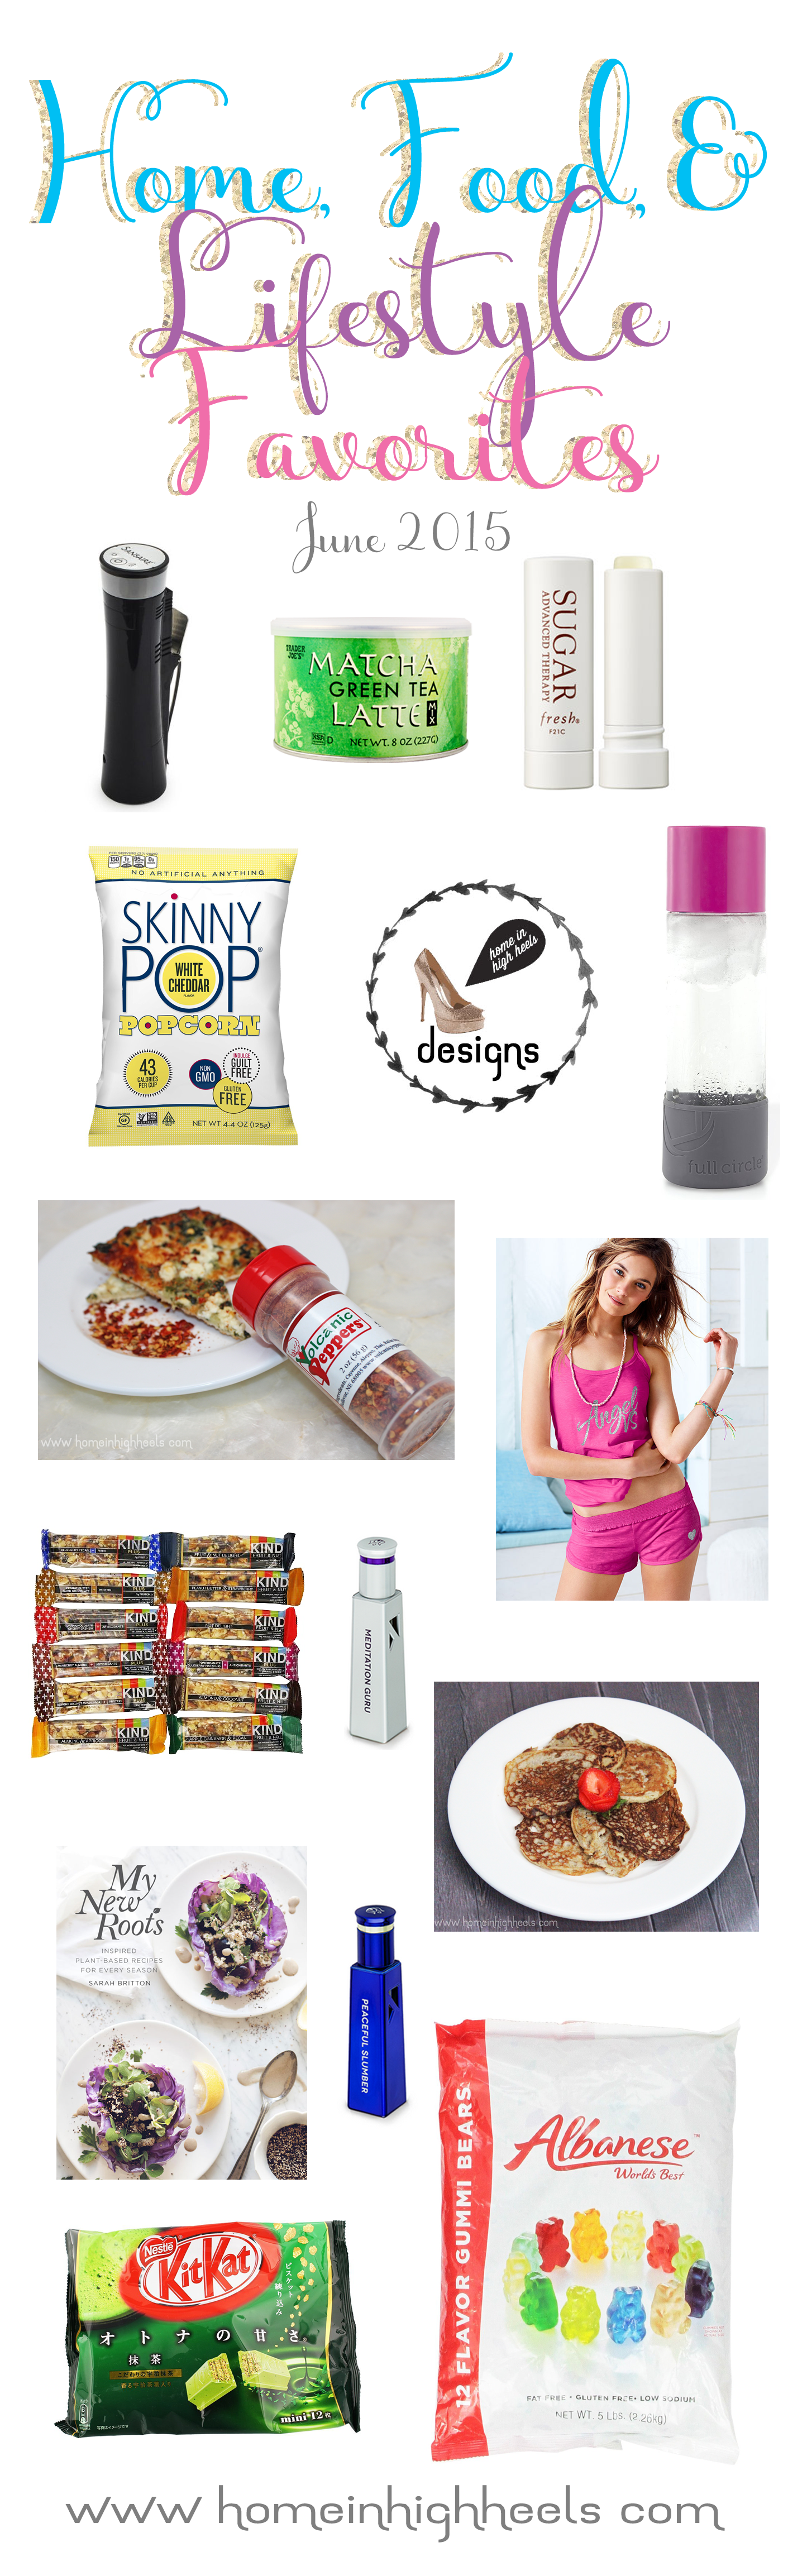 Lifestyle, food, & home favorites including yummy snacks, top recipes, & my new business on Home in High Heels | www.homeinhighheels.com